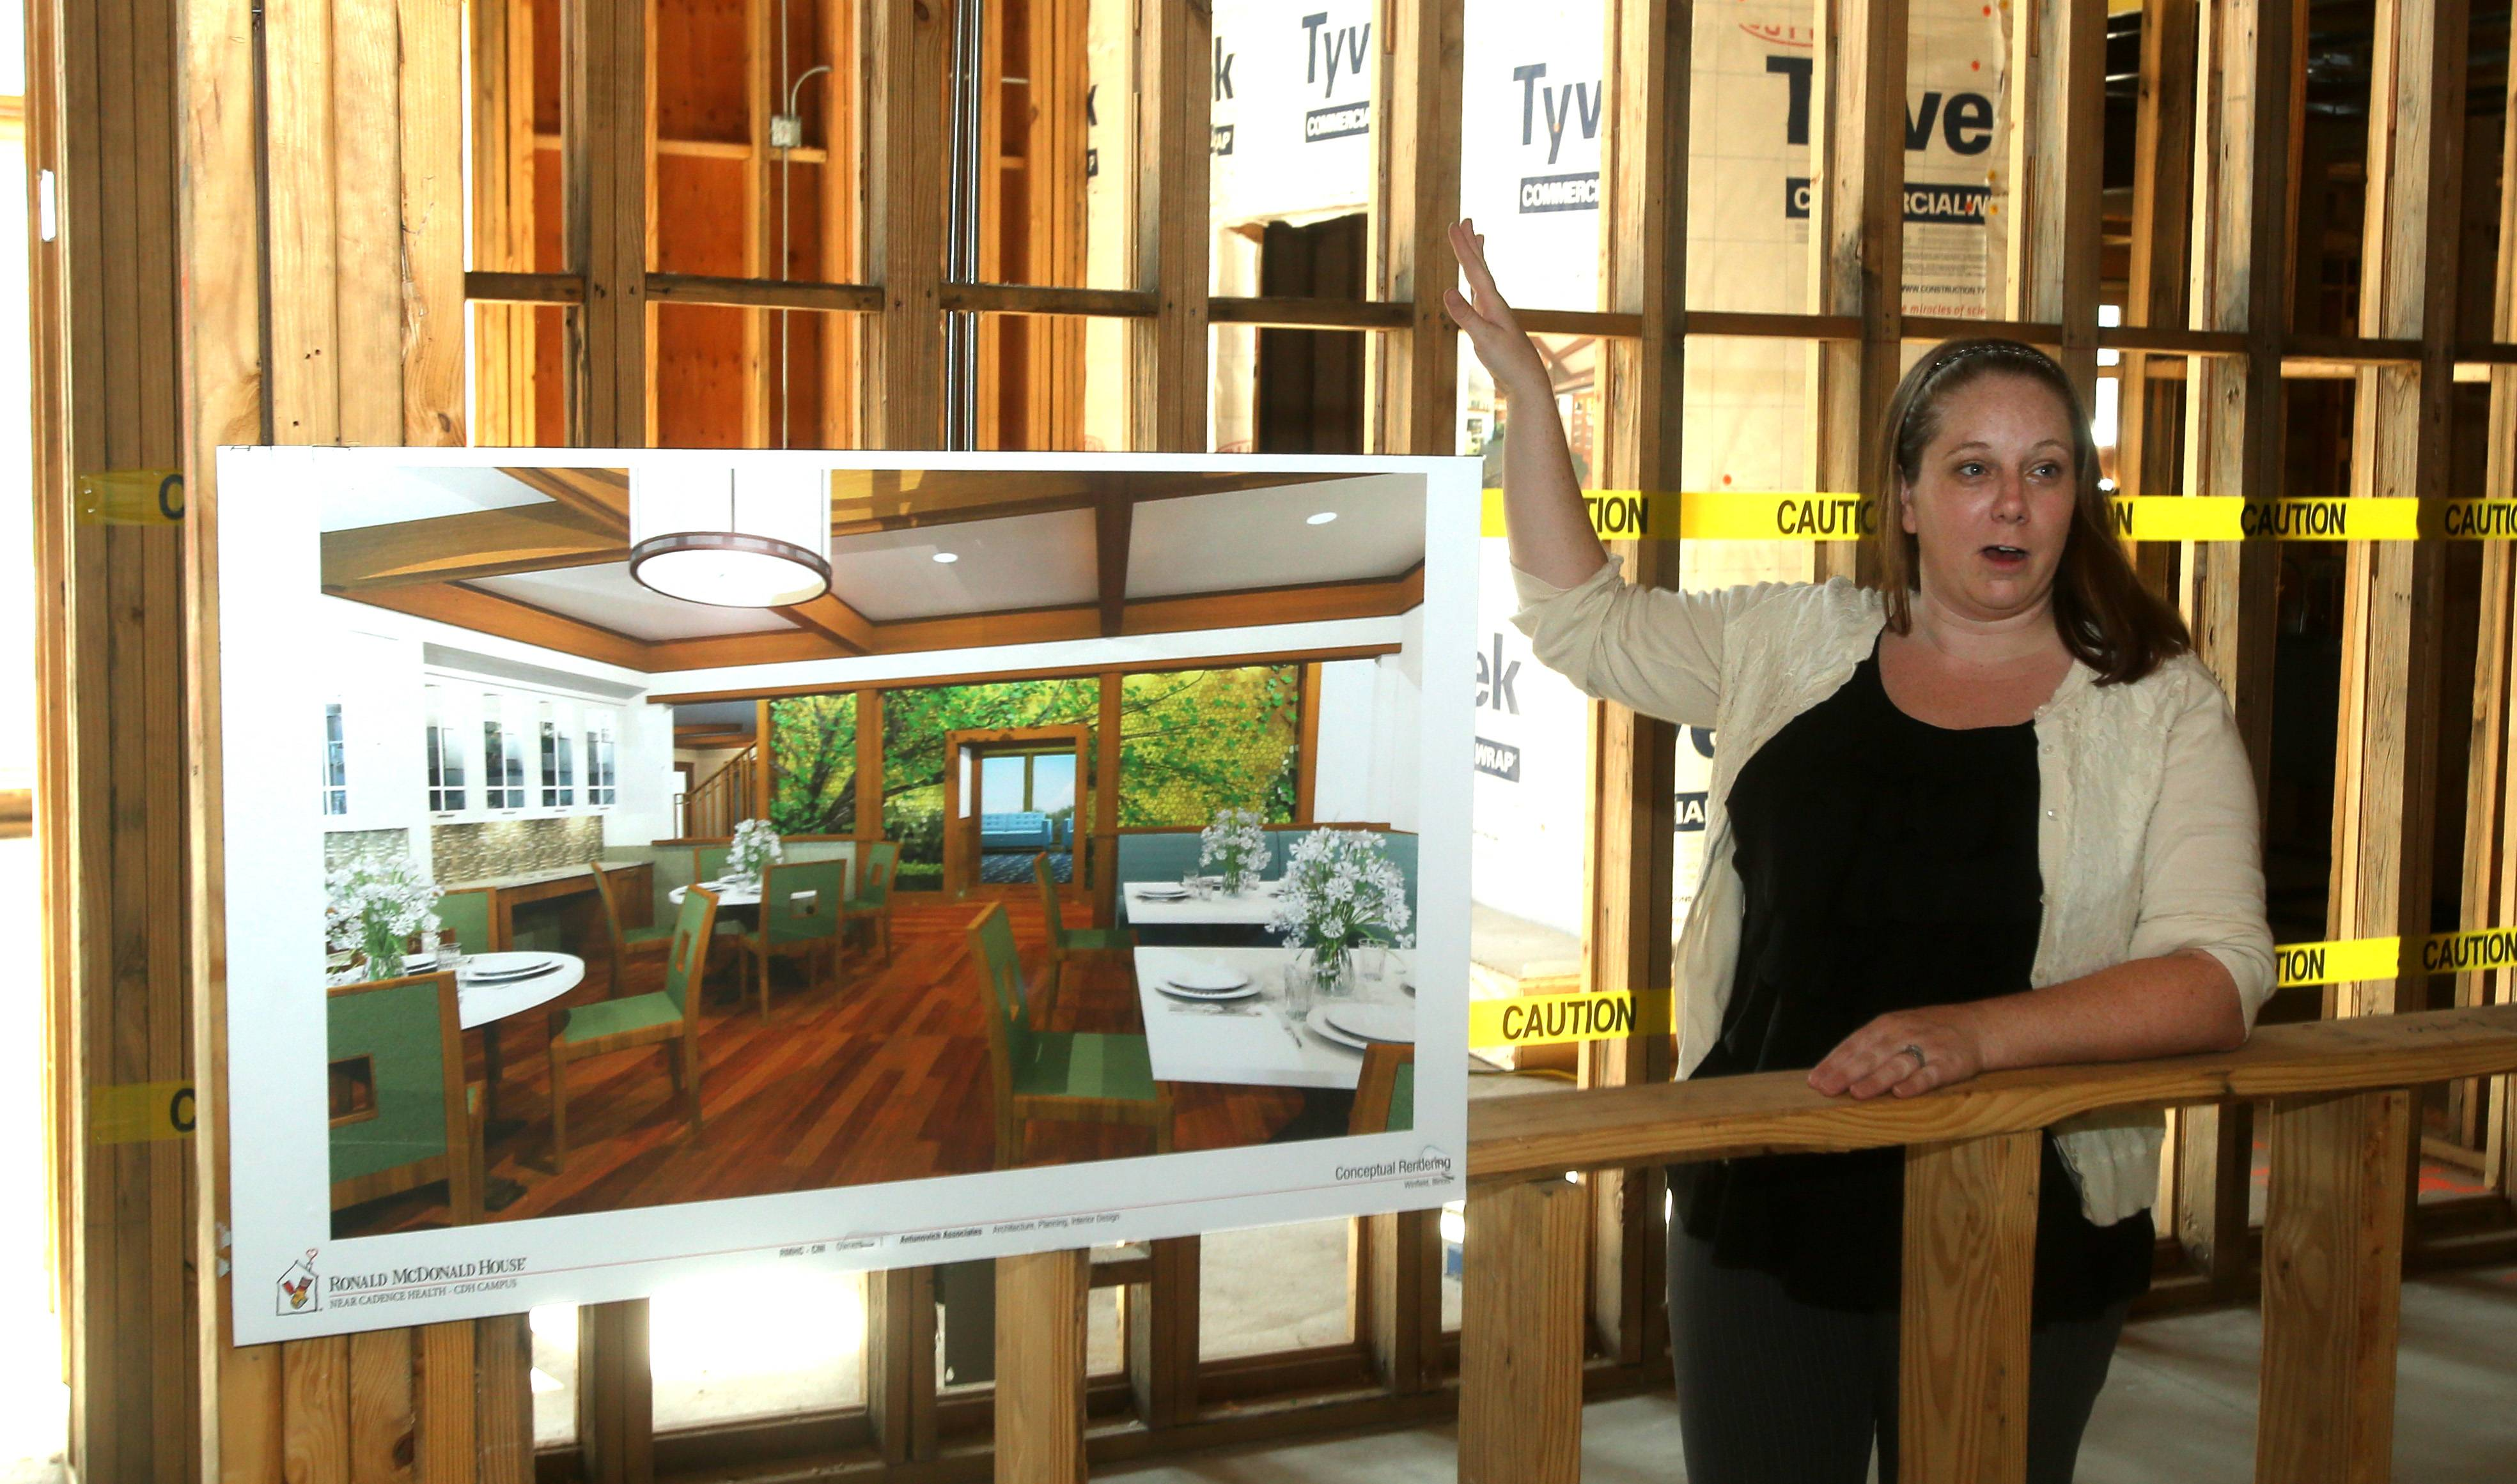 Katie Allabough, house director of the Ronald McDonald House across from Central DuPage Hospital in Winfield, talks about the construction, which will be completed by Feb. 14.